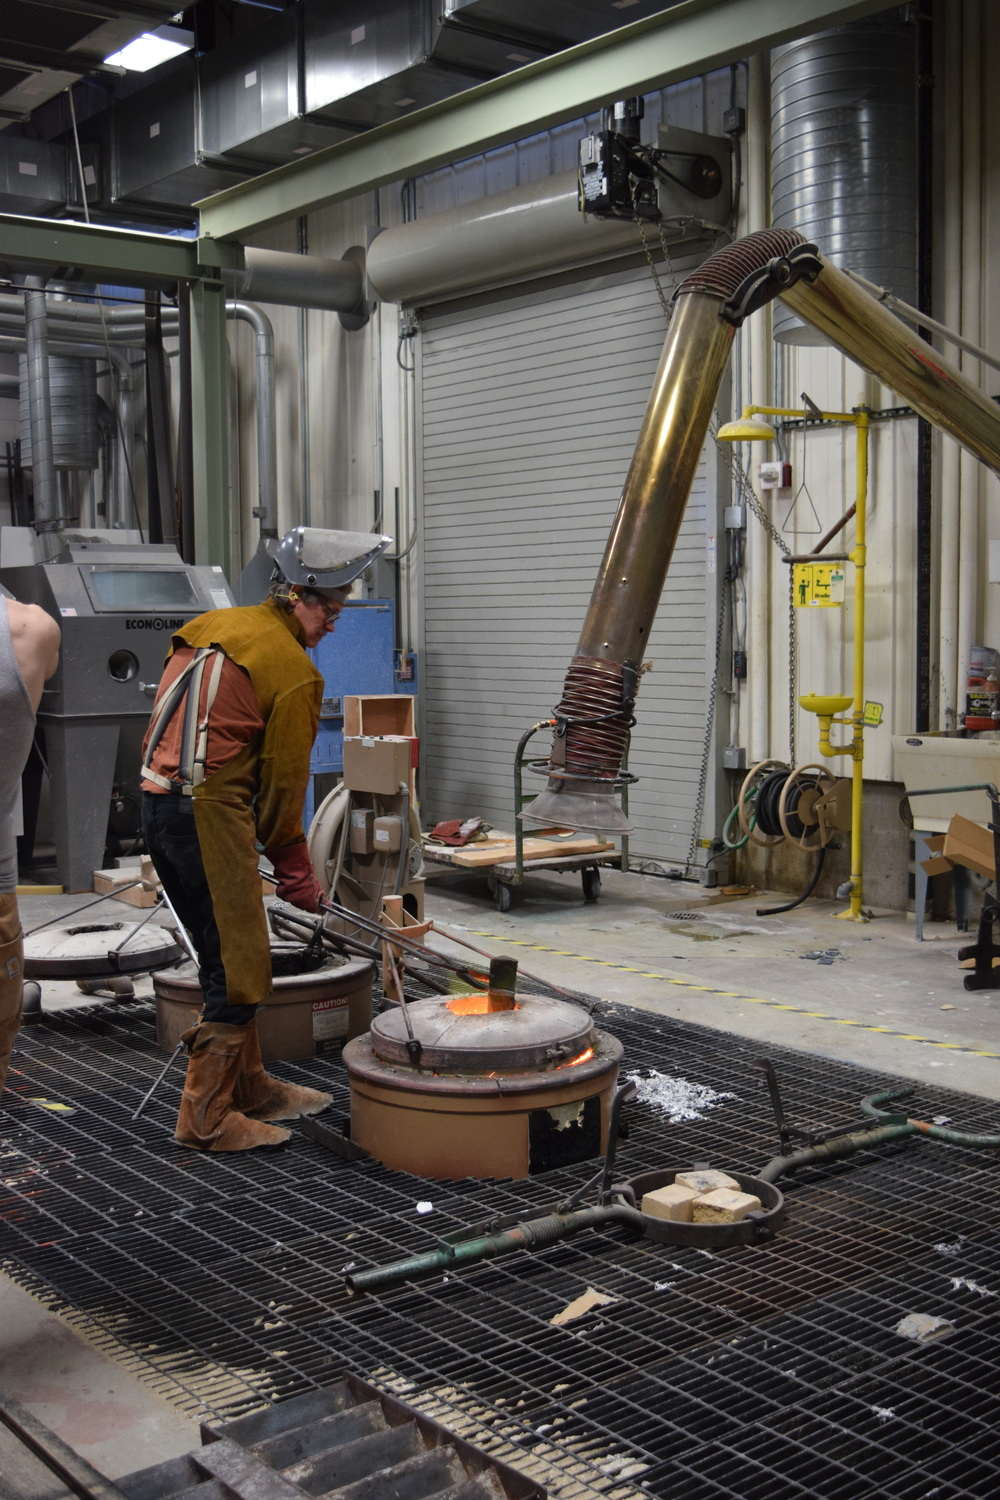 Sculptor and Art Metals instructor Peter Flanary loading the forge with bronze. Take a look at his work  HERE .